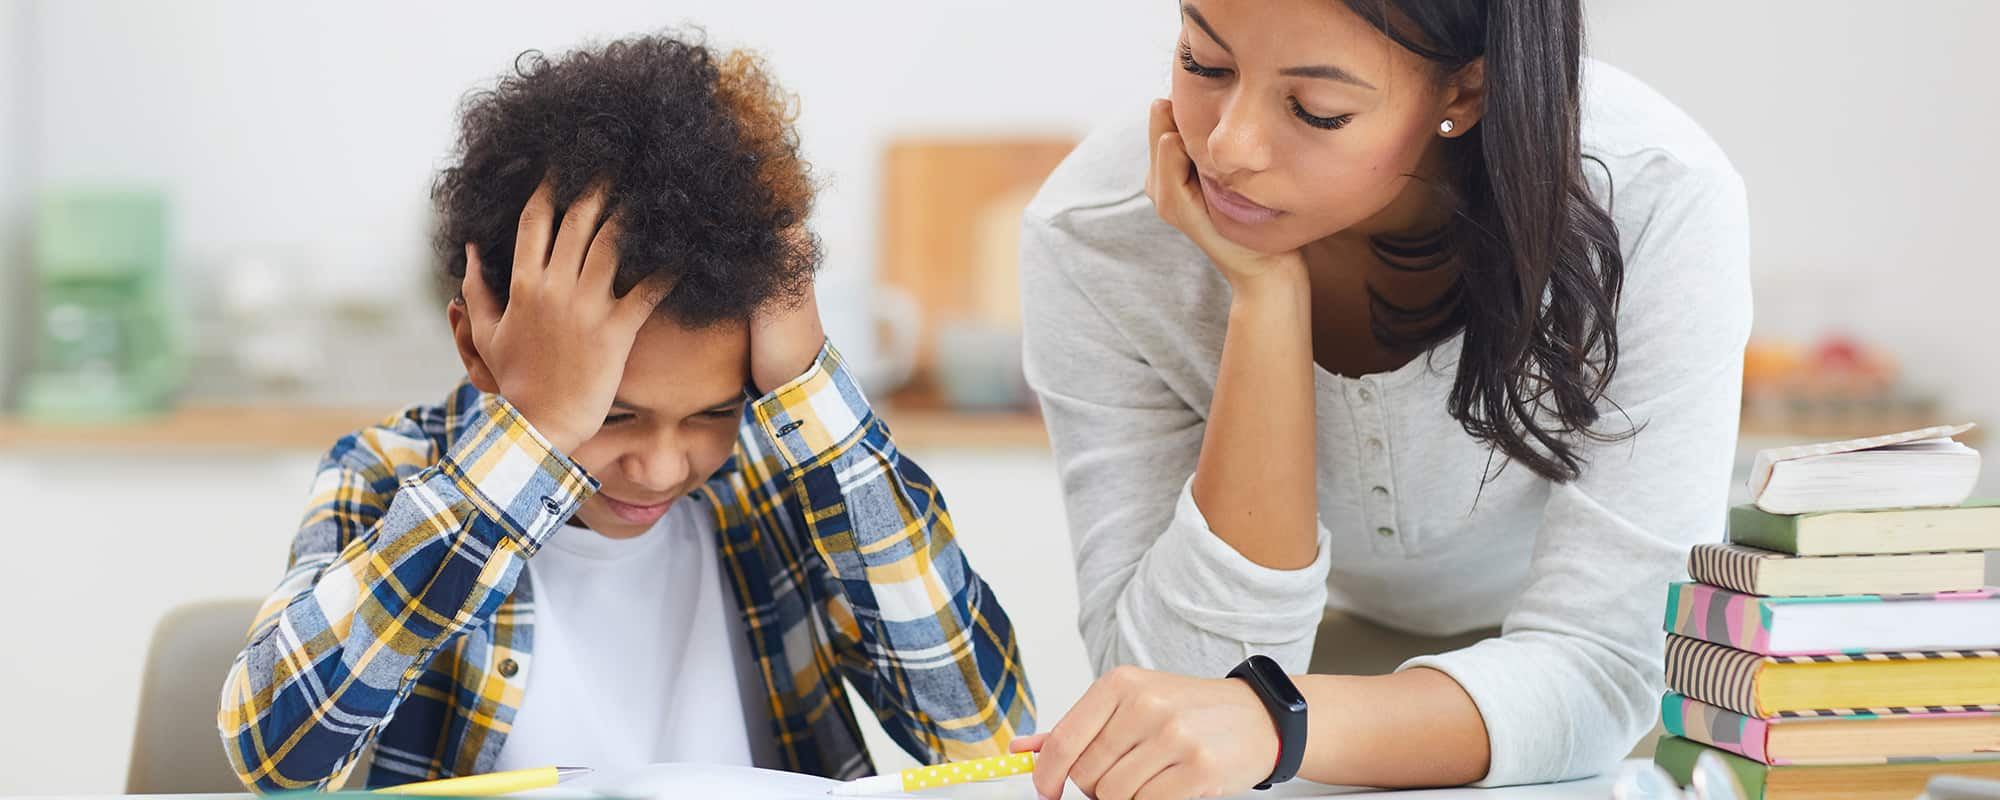 Does My Child Have a Learning Disorder?